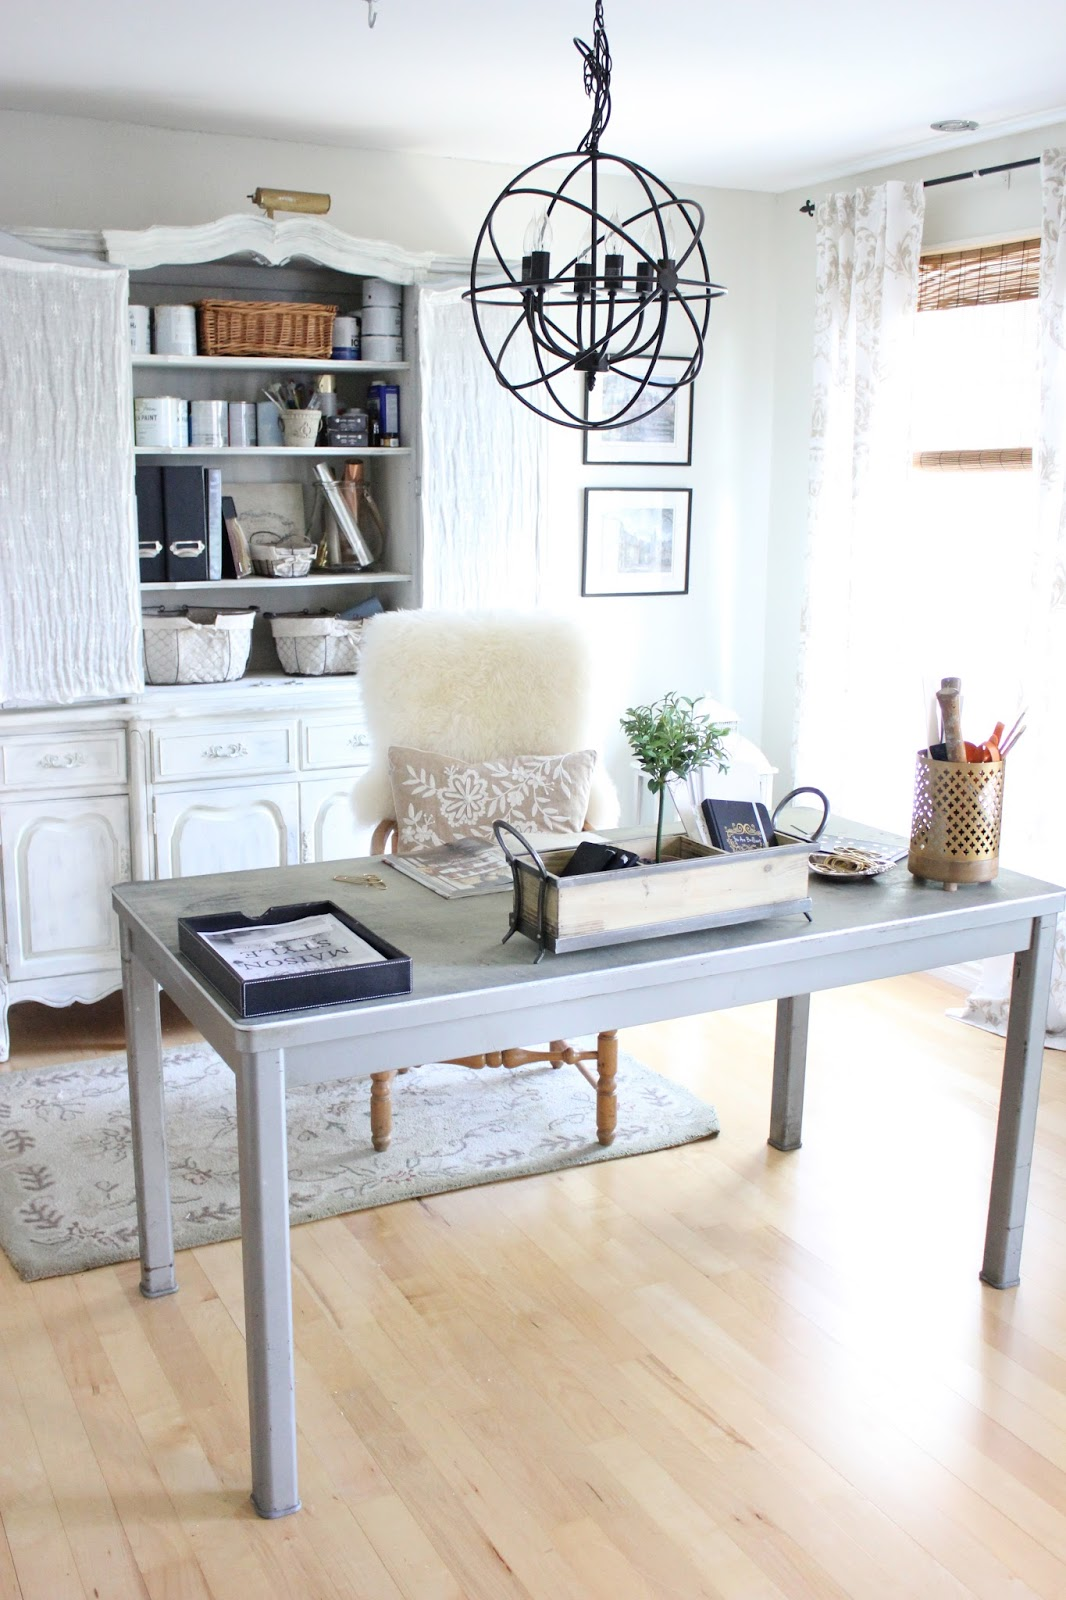 Maison Decor: Organize It Gorgeous! My New Home Office Is